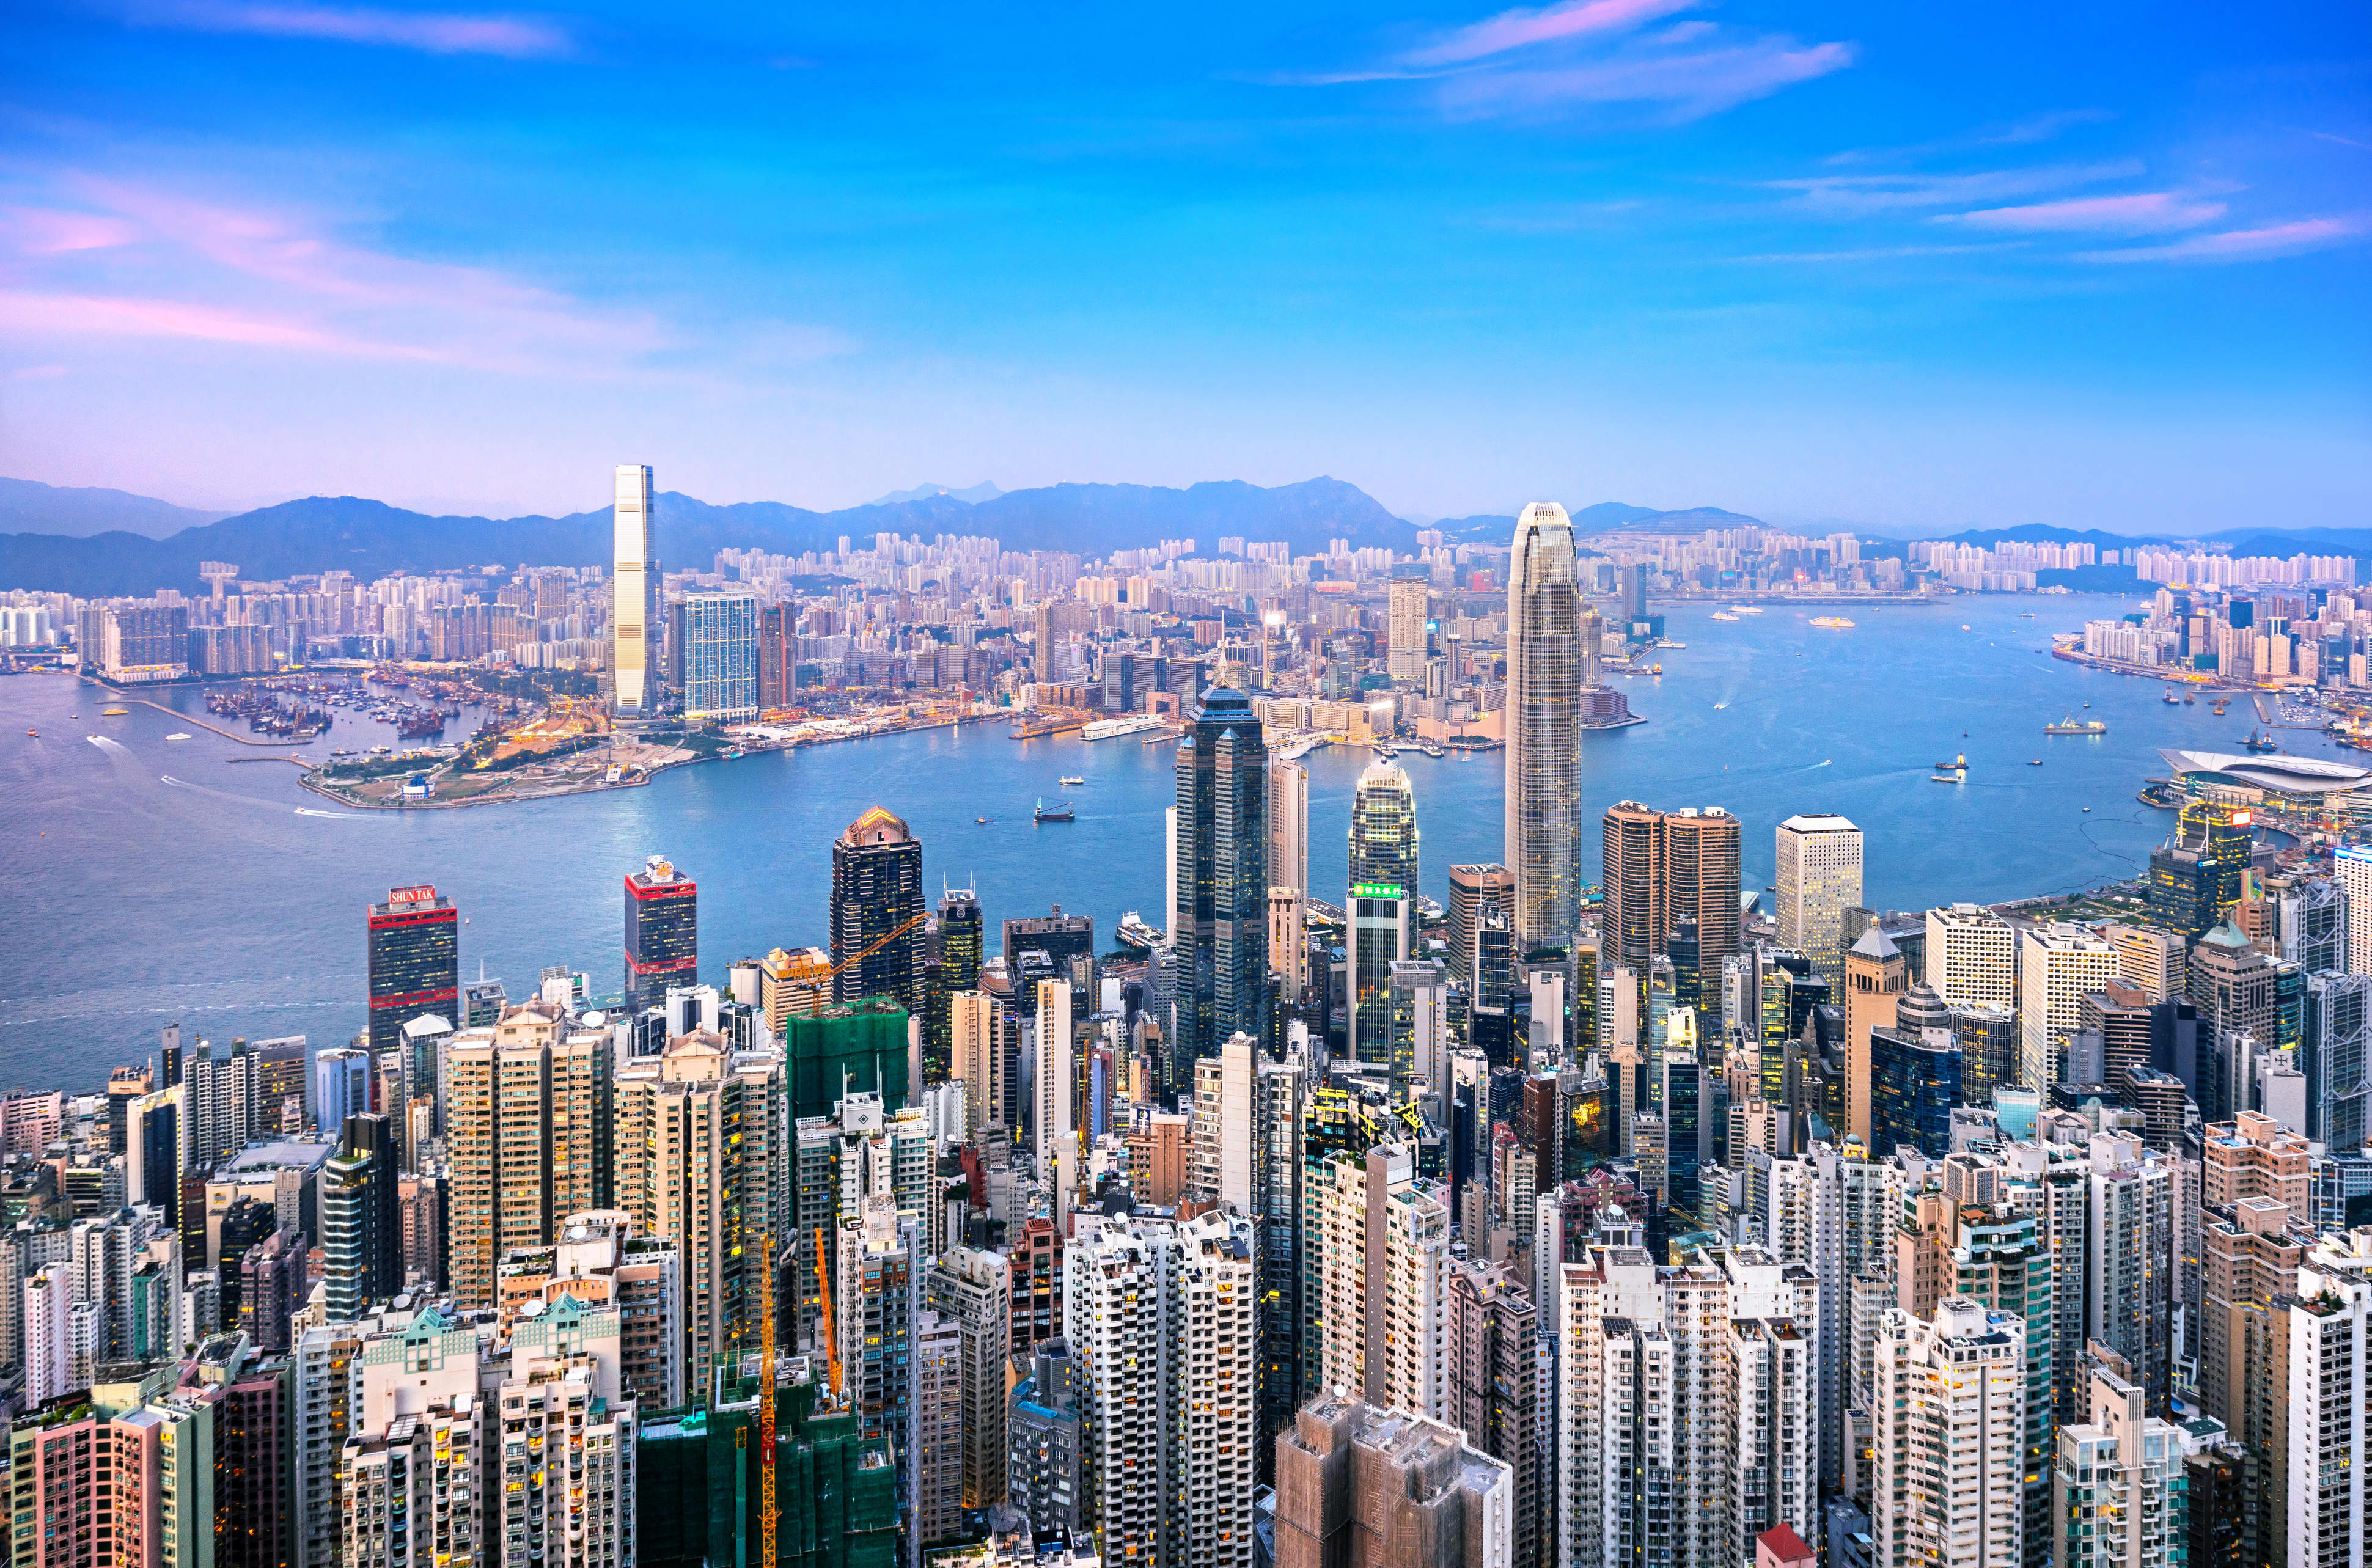 Hong Kong named world's most expensive city to buy a home